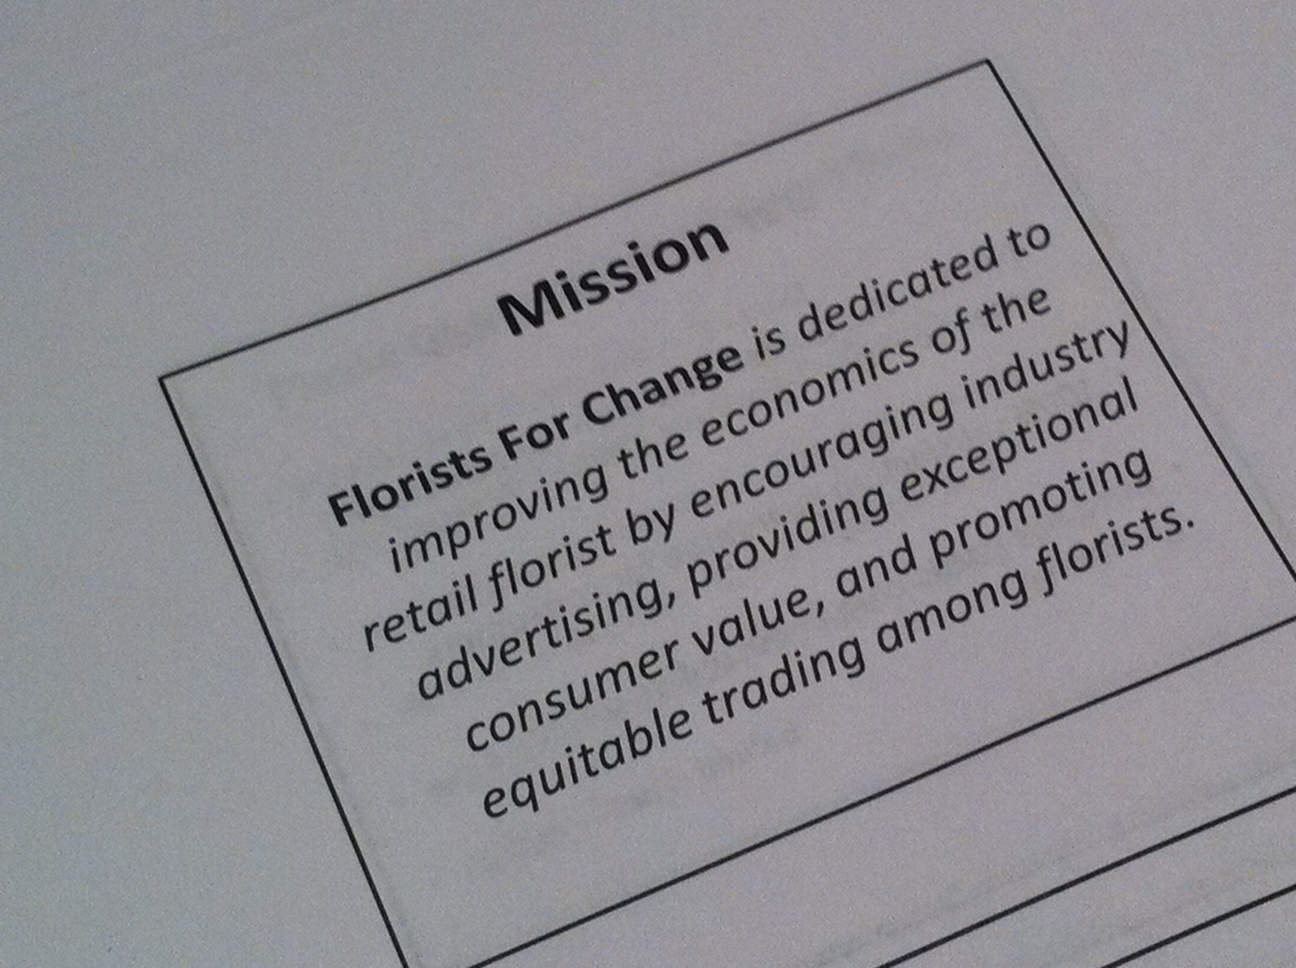 Florist-For-Change-Las-Vegas